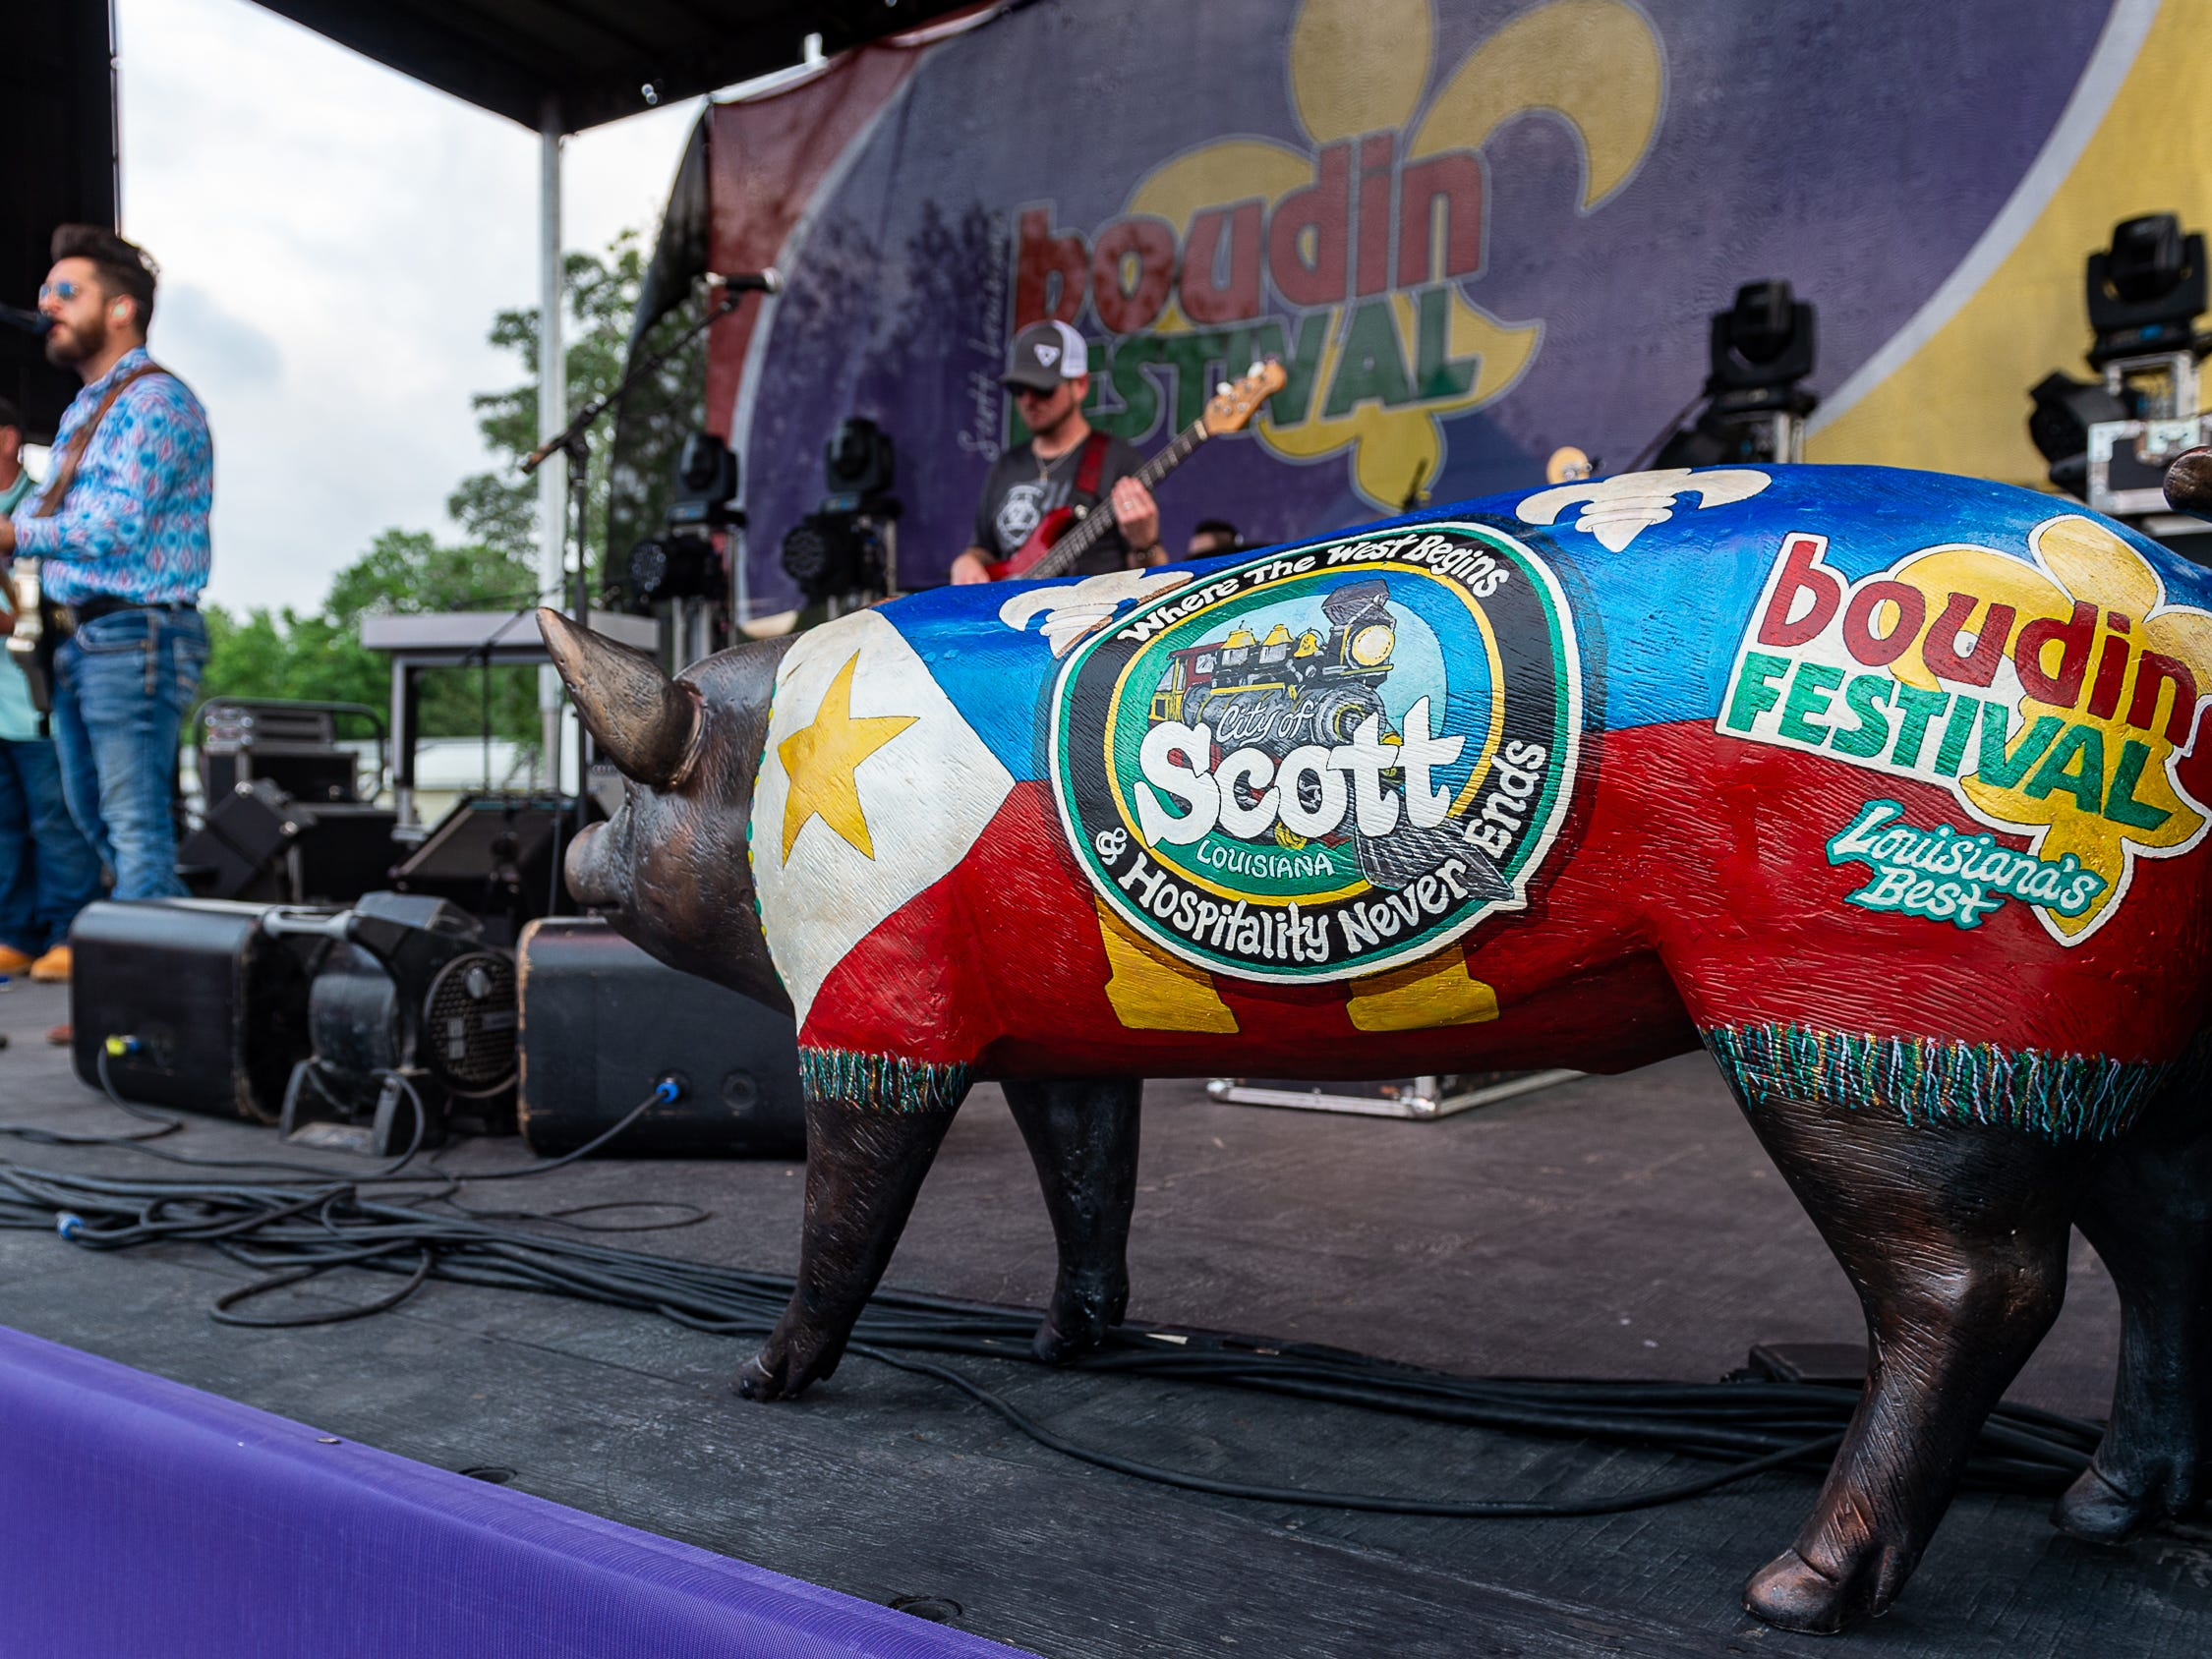 Scott Boudin Festival. Saturday, April 6, 2019.